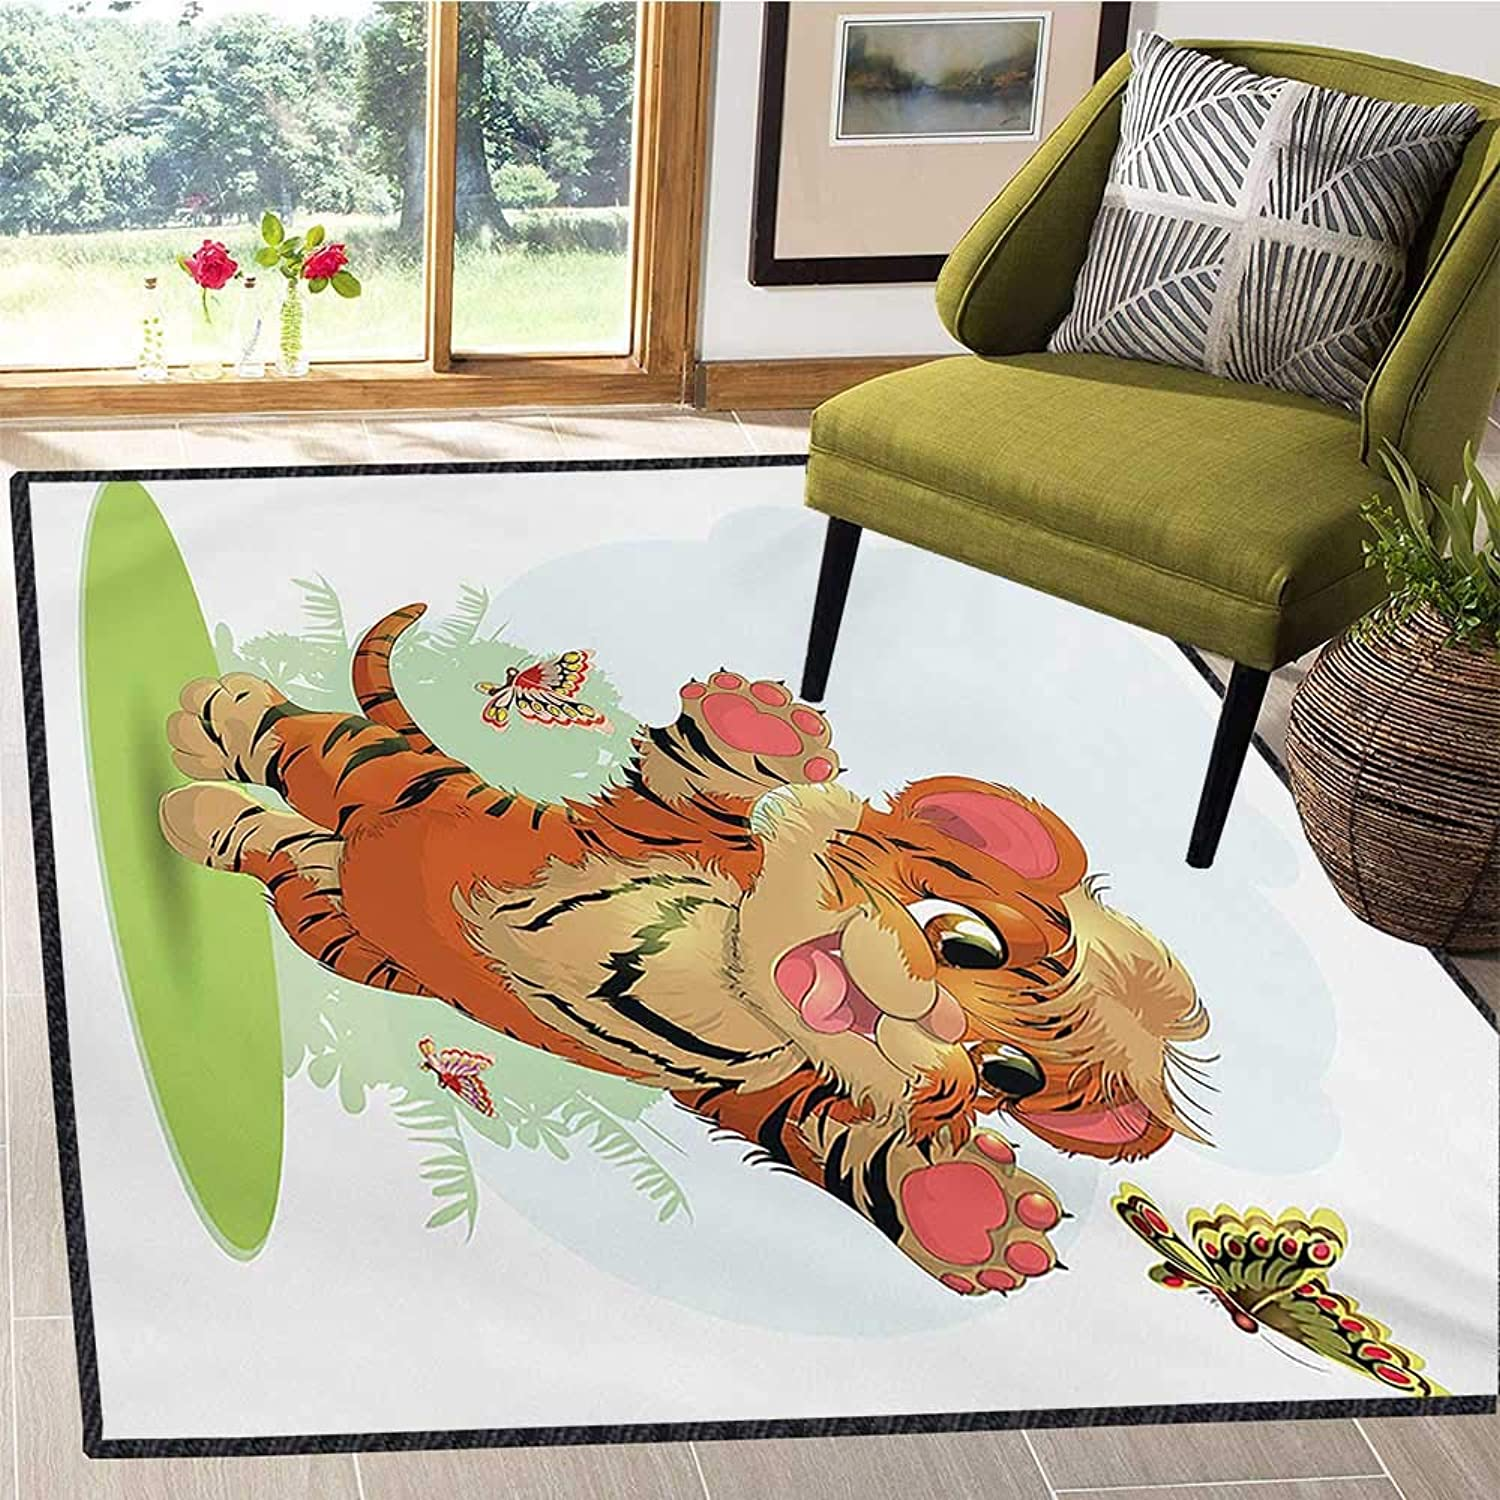 Cartoon, Area Rug Slip Pad, Cub Playing with Butterflies in The Meadow Joyful Lively Baby Tiger Cat, Door Mats for Inside Non Slip Backing 5x8 Ft orange Cream Green